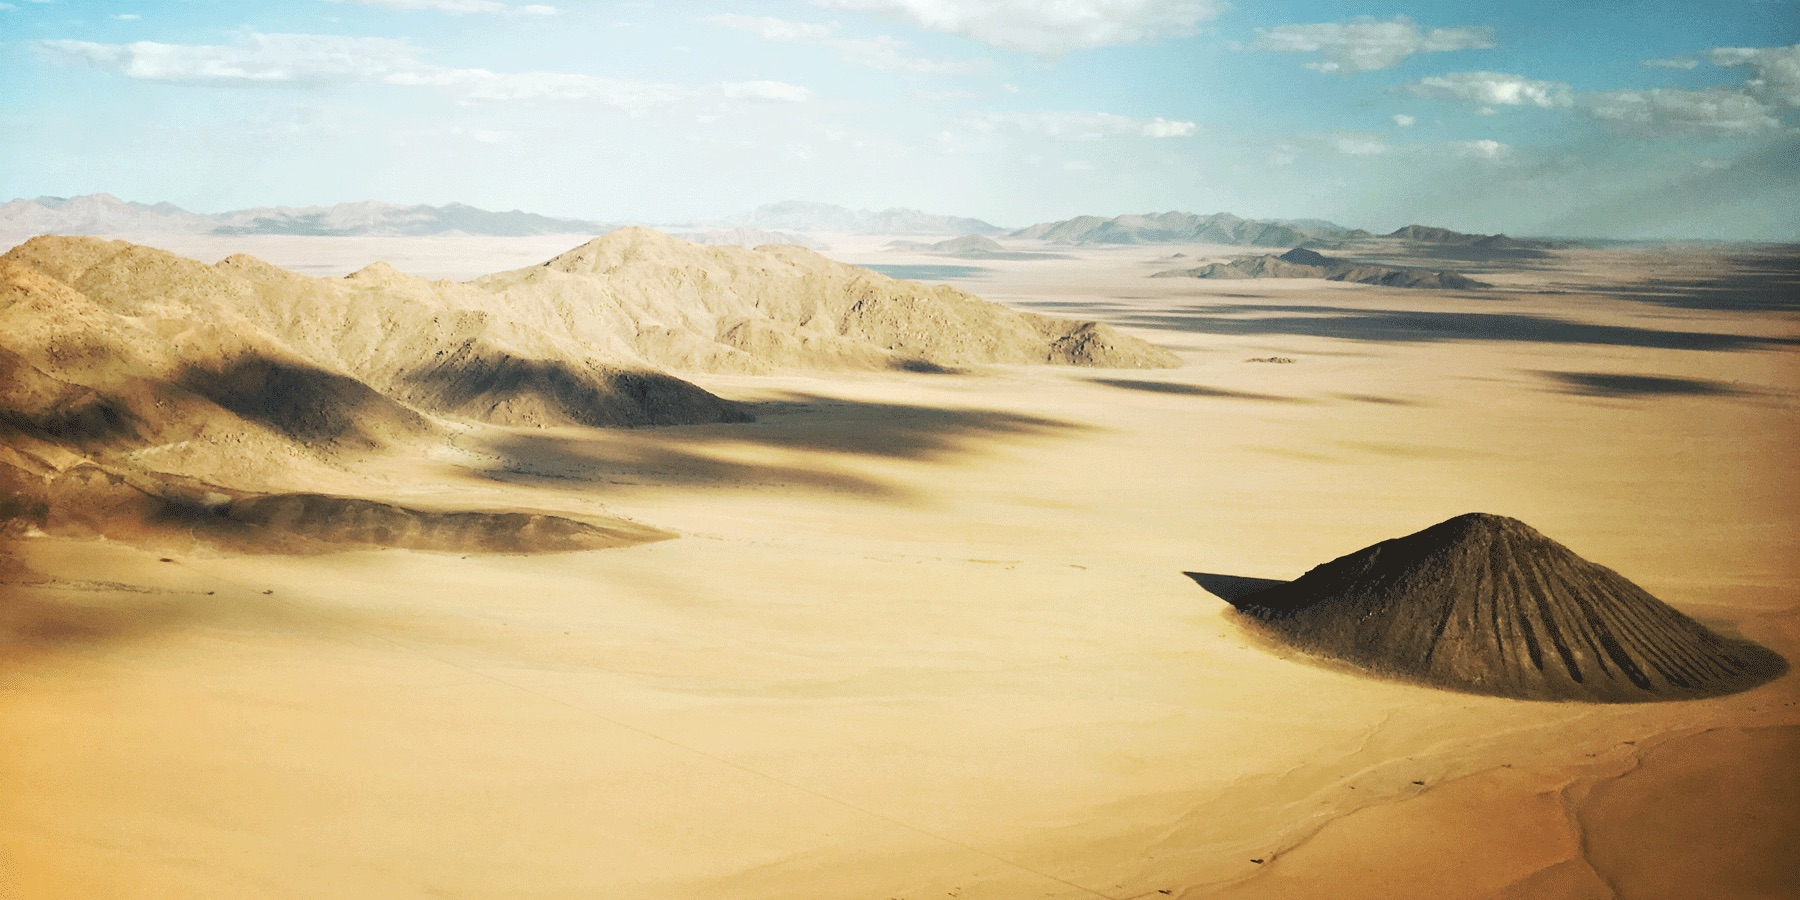 Sonop, Namibia